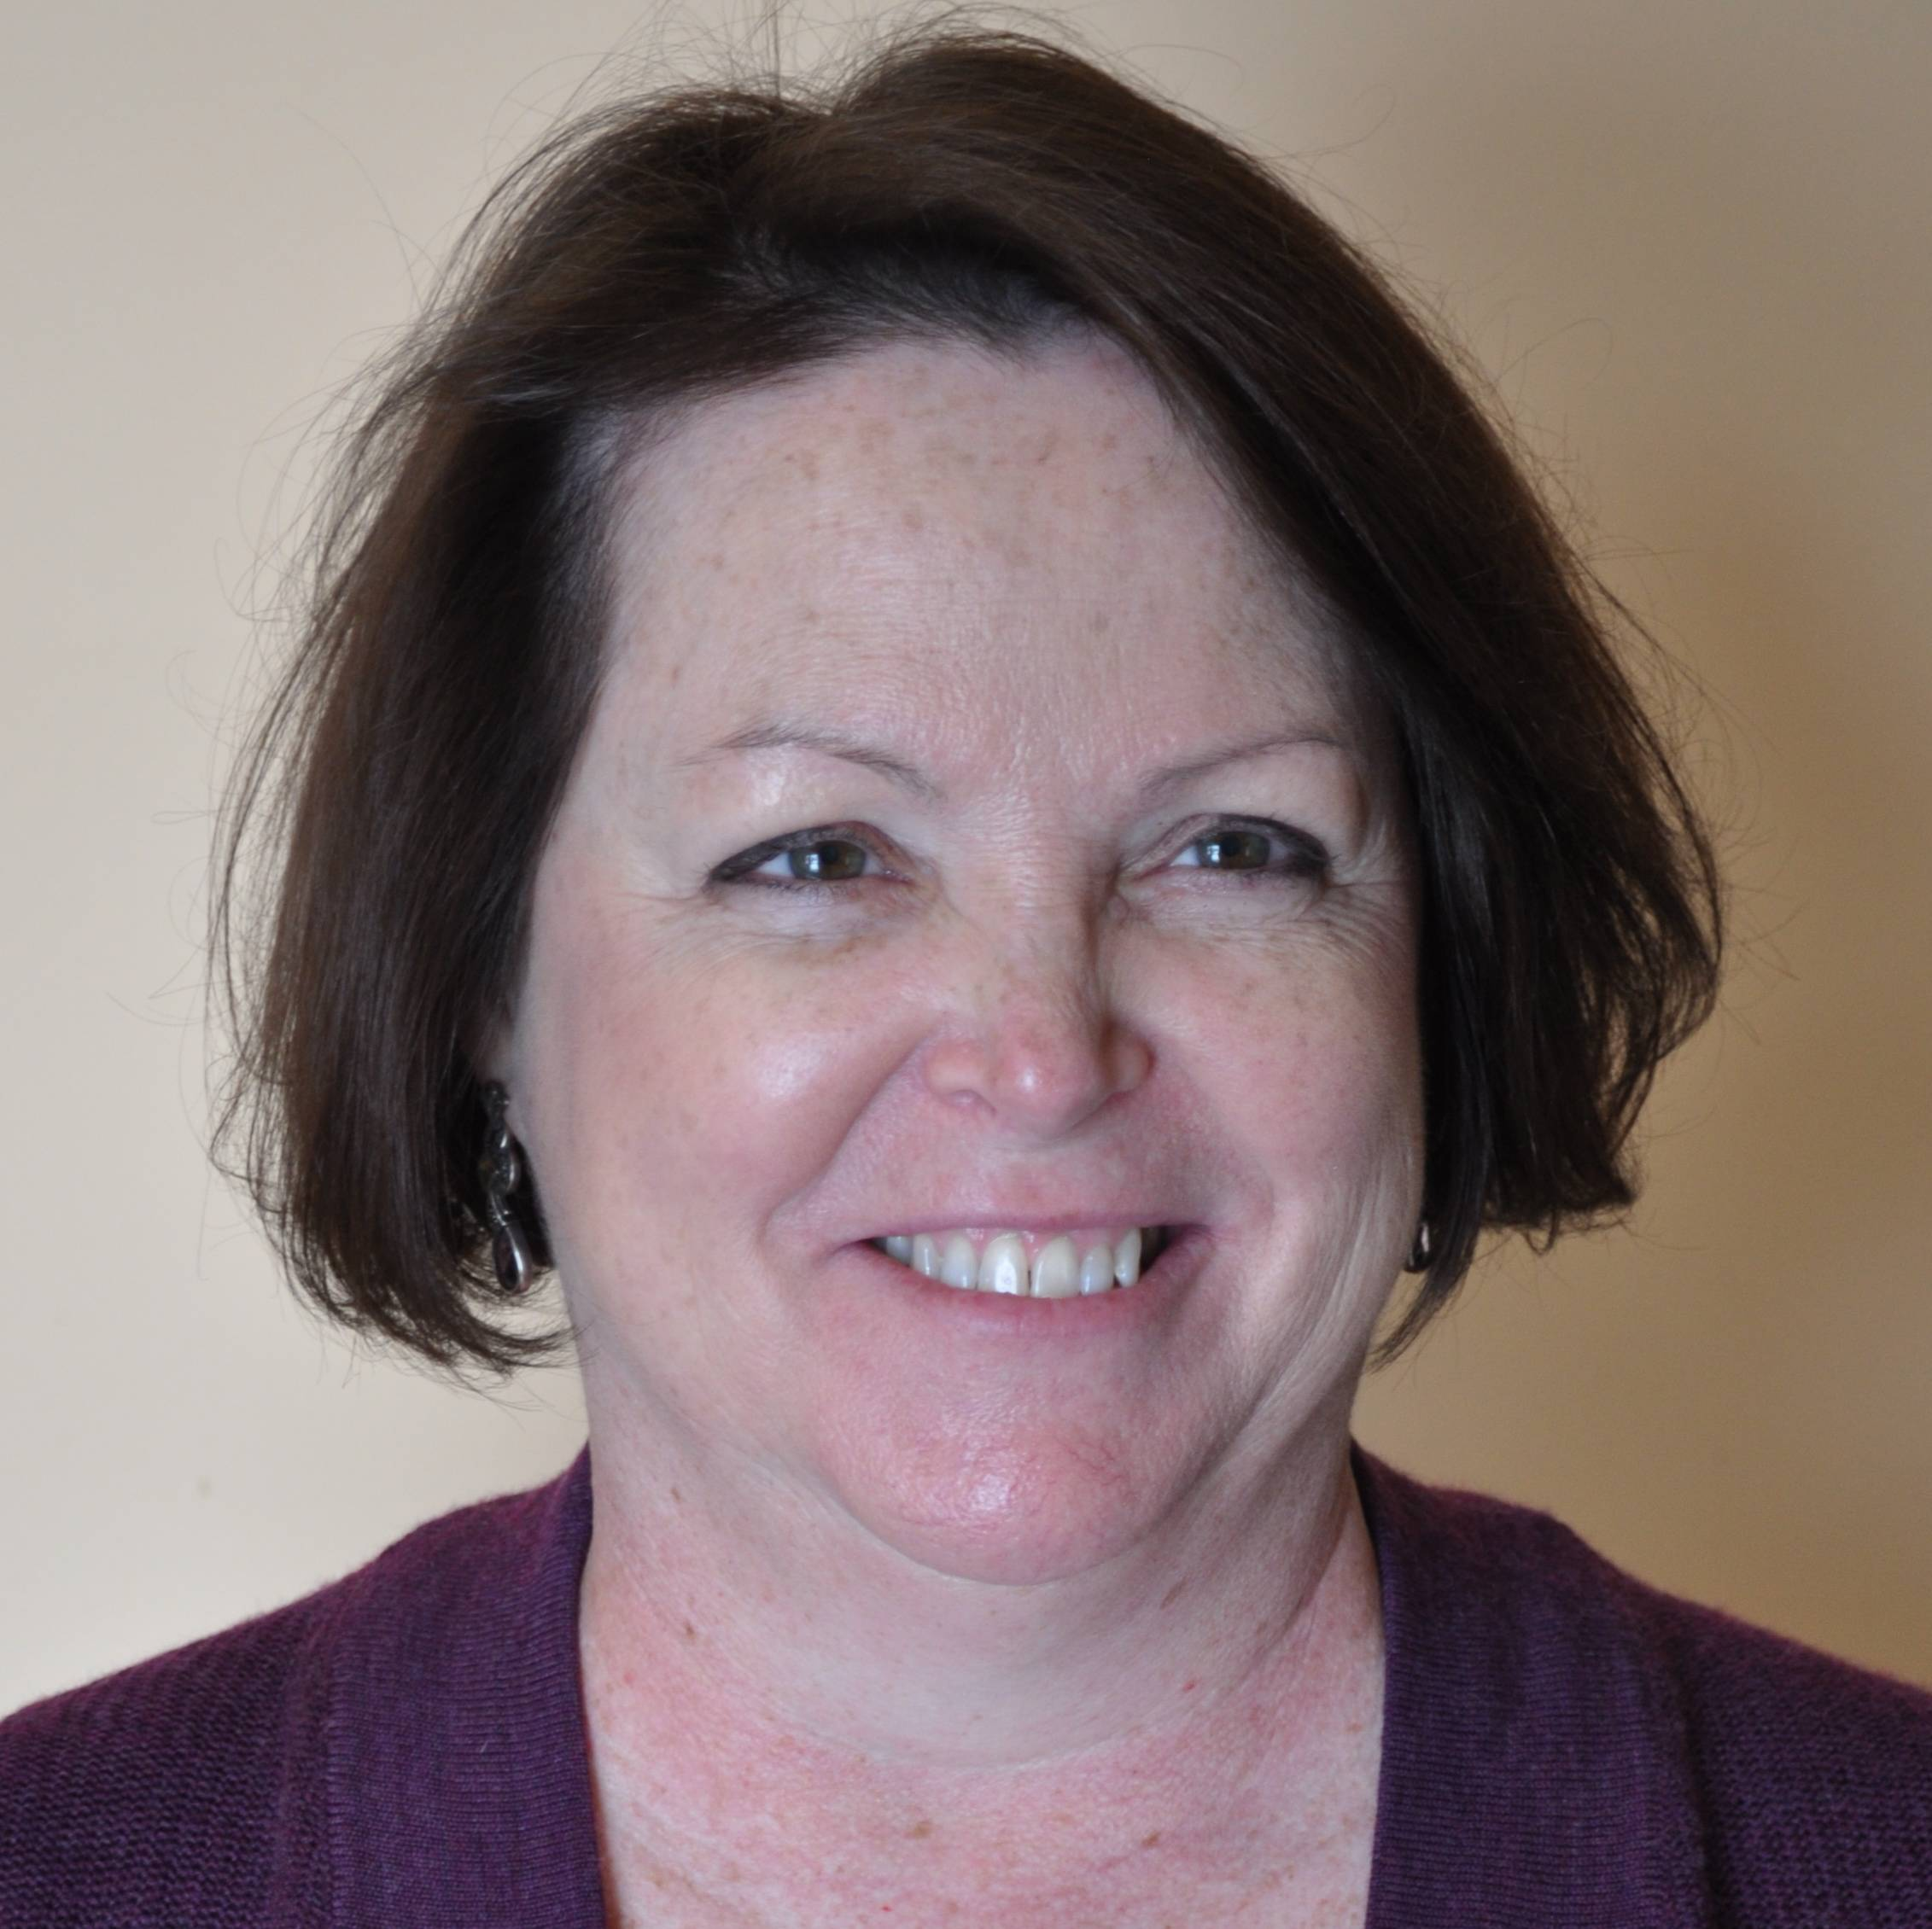 Patricia Schuberg, running for Elburn Village Board (4-year Terms)